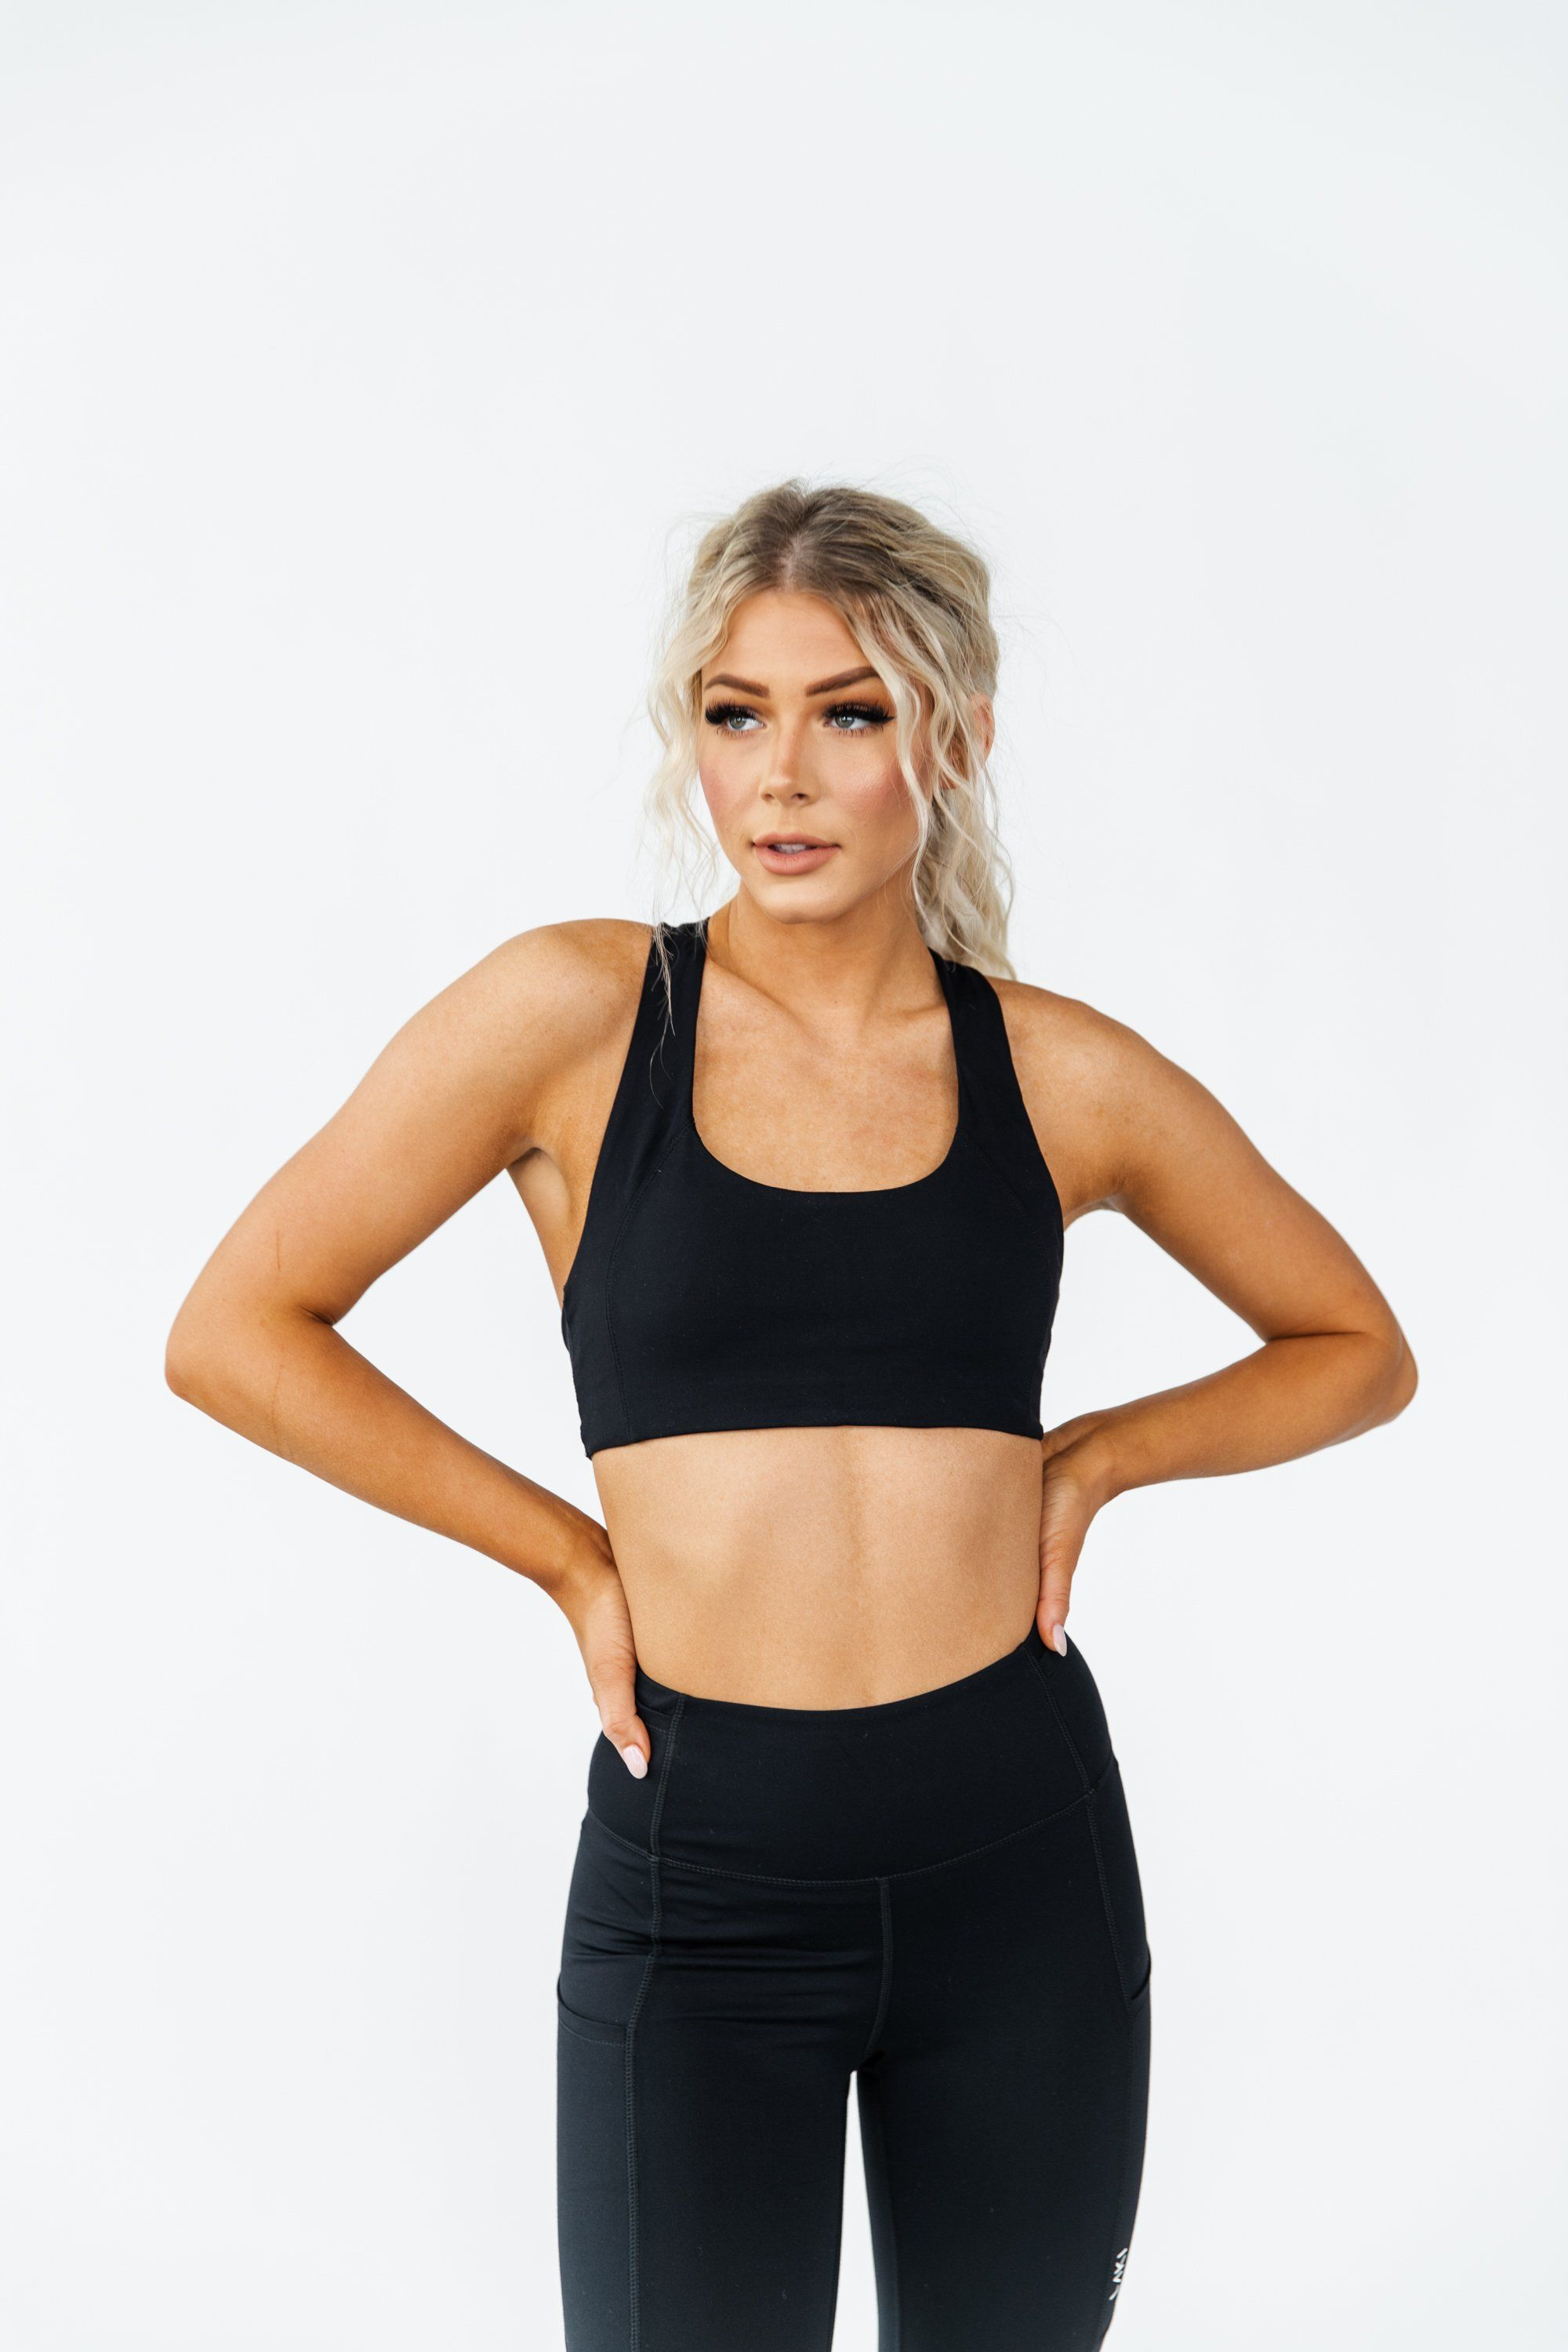 FREE RETURNS & EASY EXCHANGES PRODUCT DETAILS - Low medium support- Removable padding- Sweat-wicking fabric- Strappy back design- Fabric: Nylon & Spandex- Bra